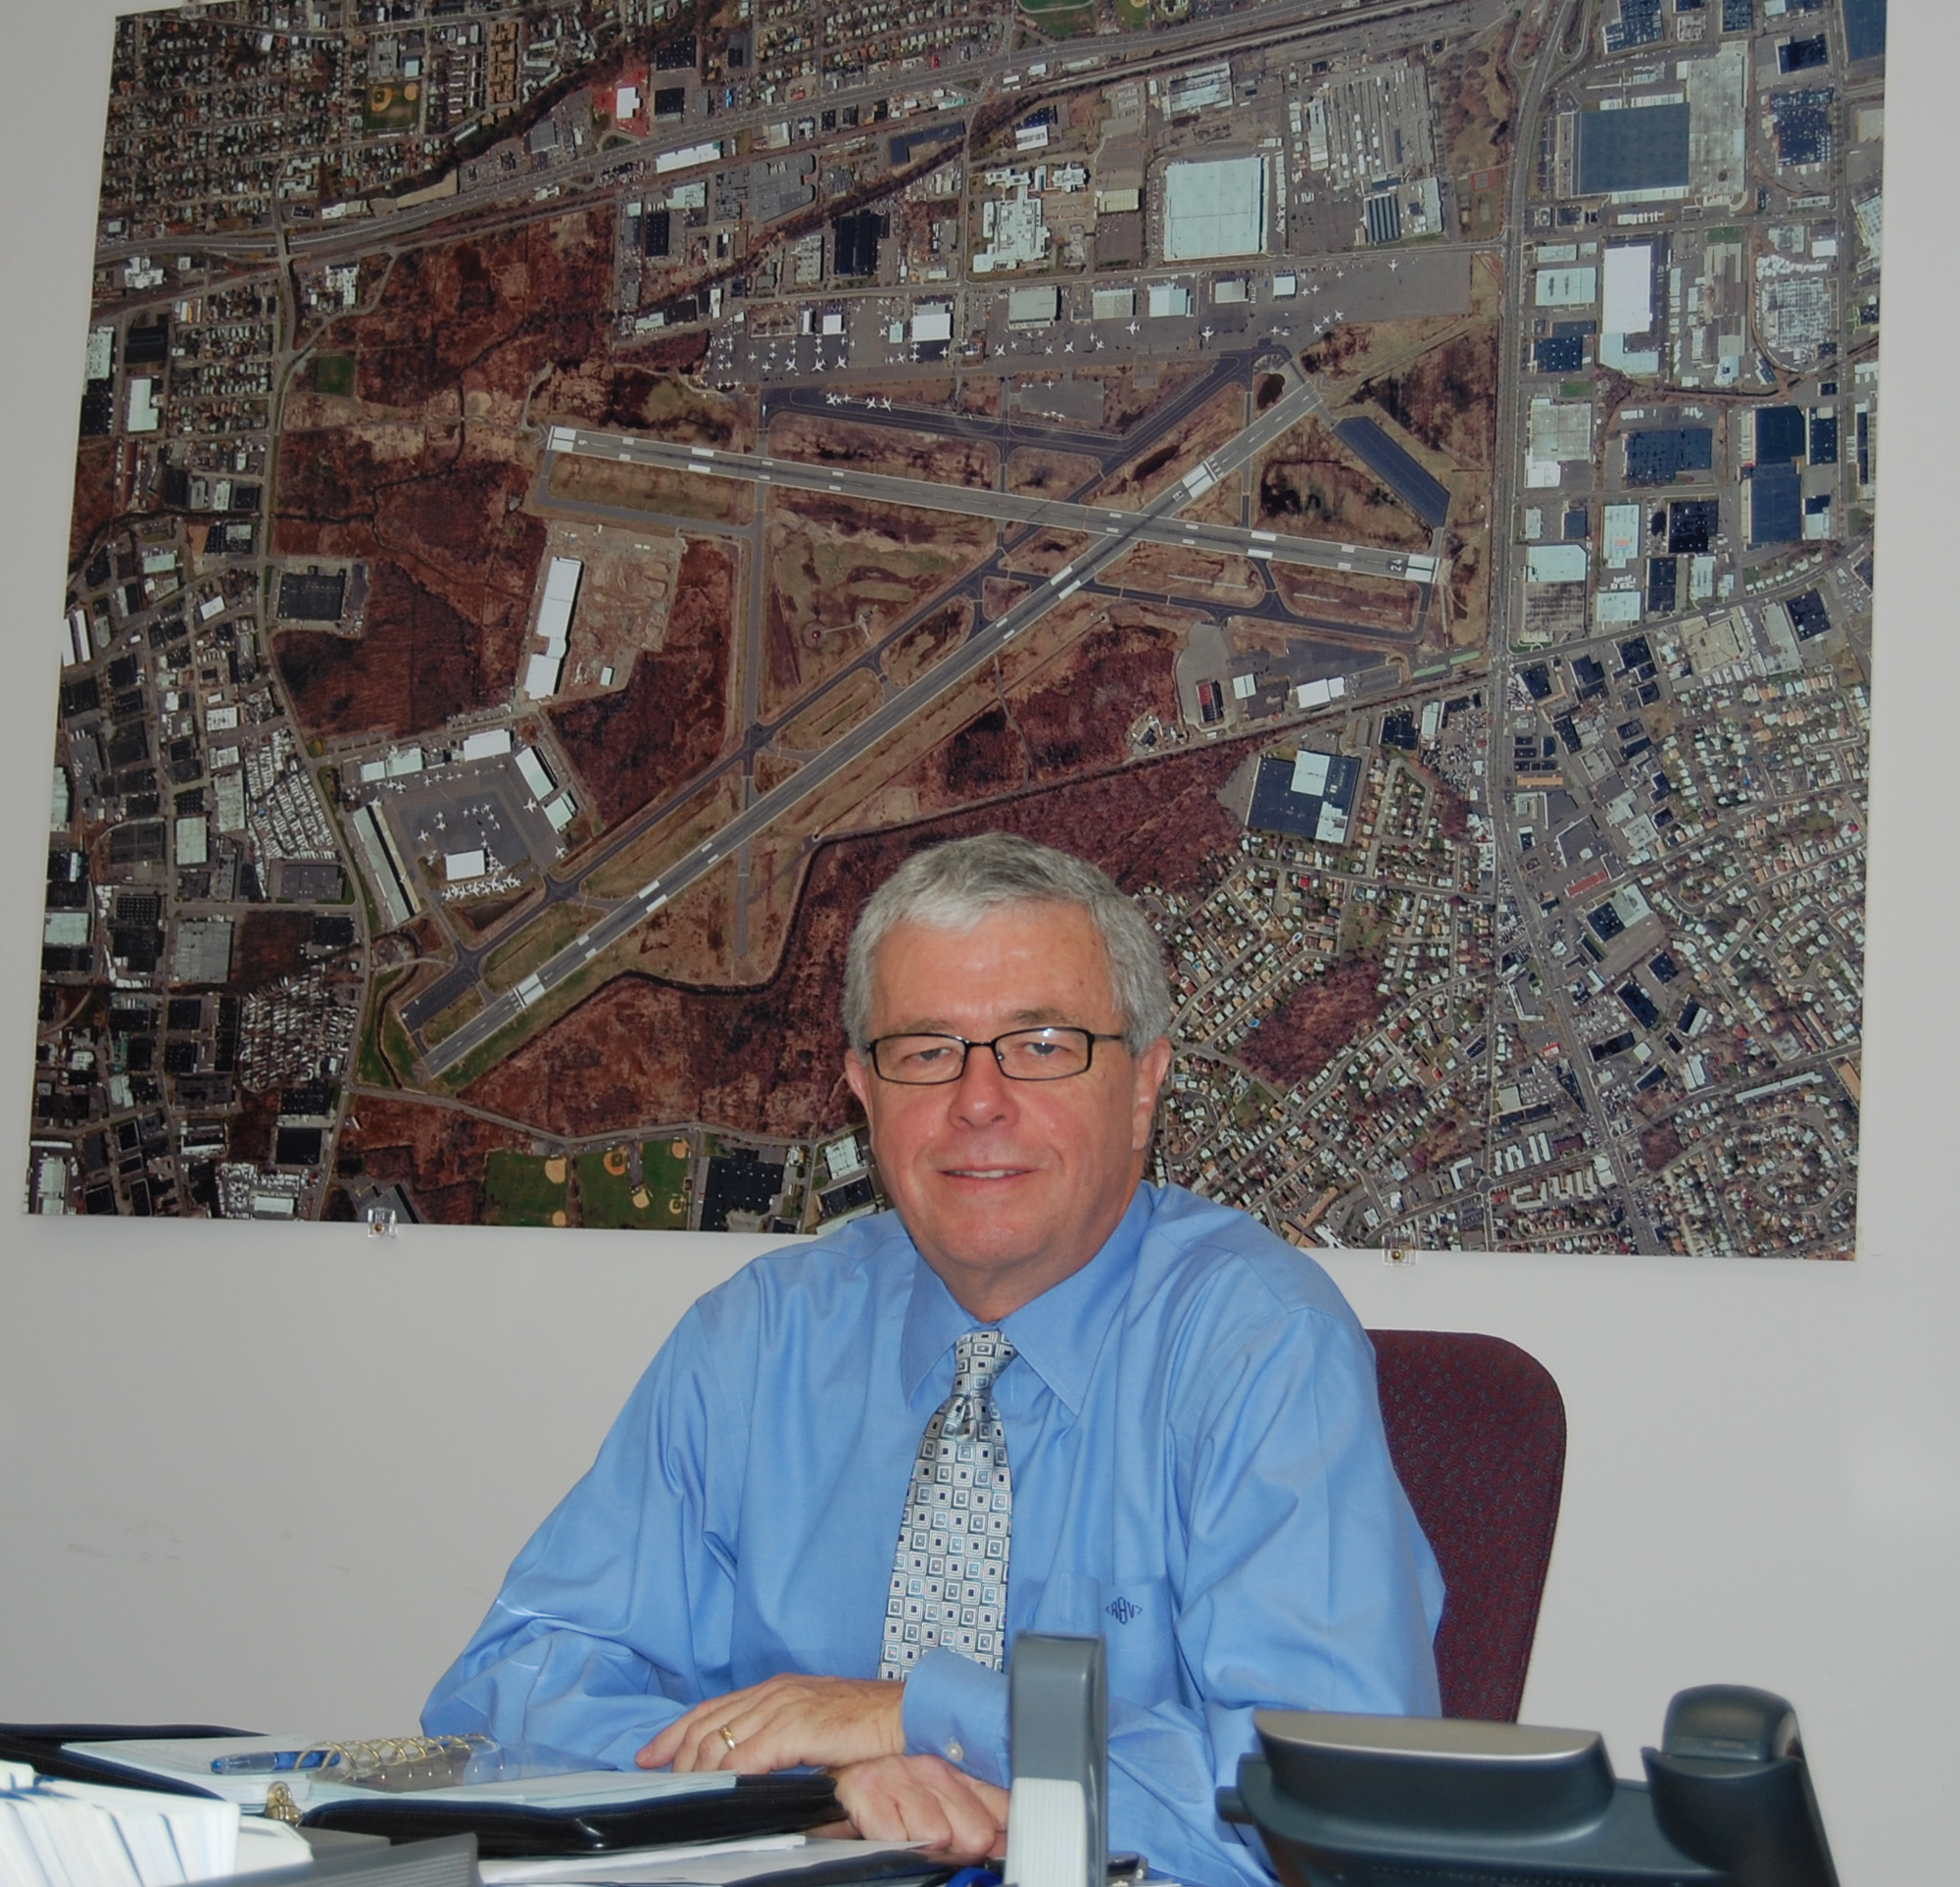 Teterboro Airport Presents Challenges to New Manager